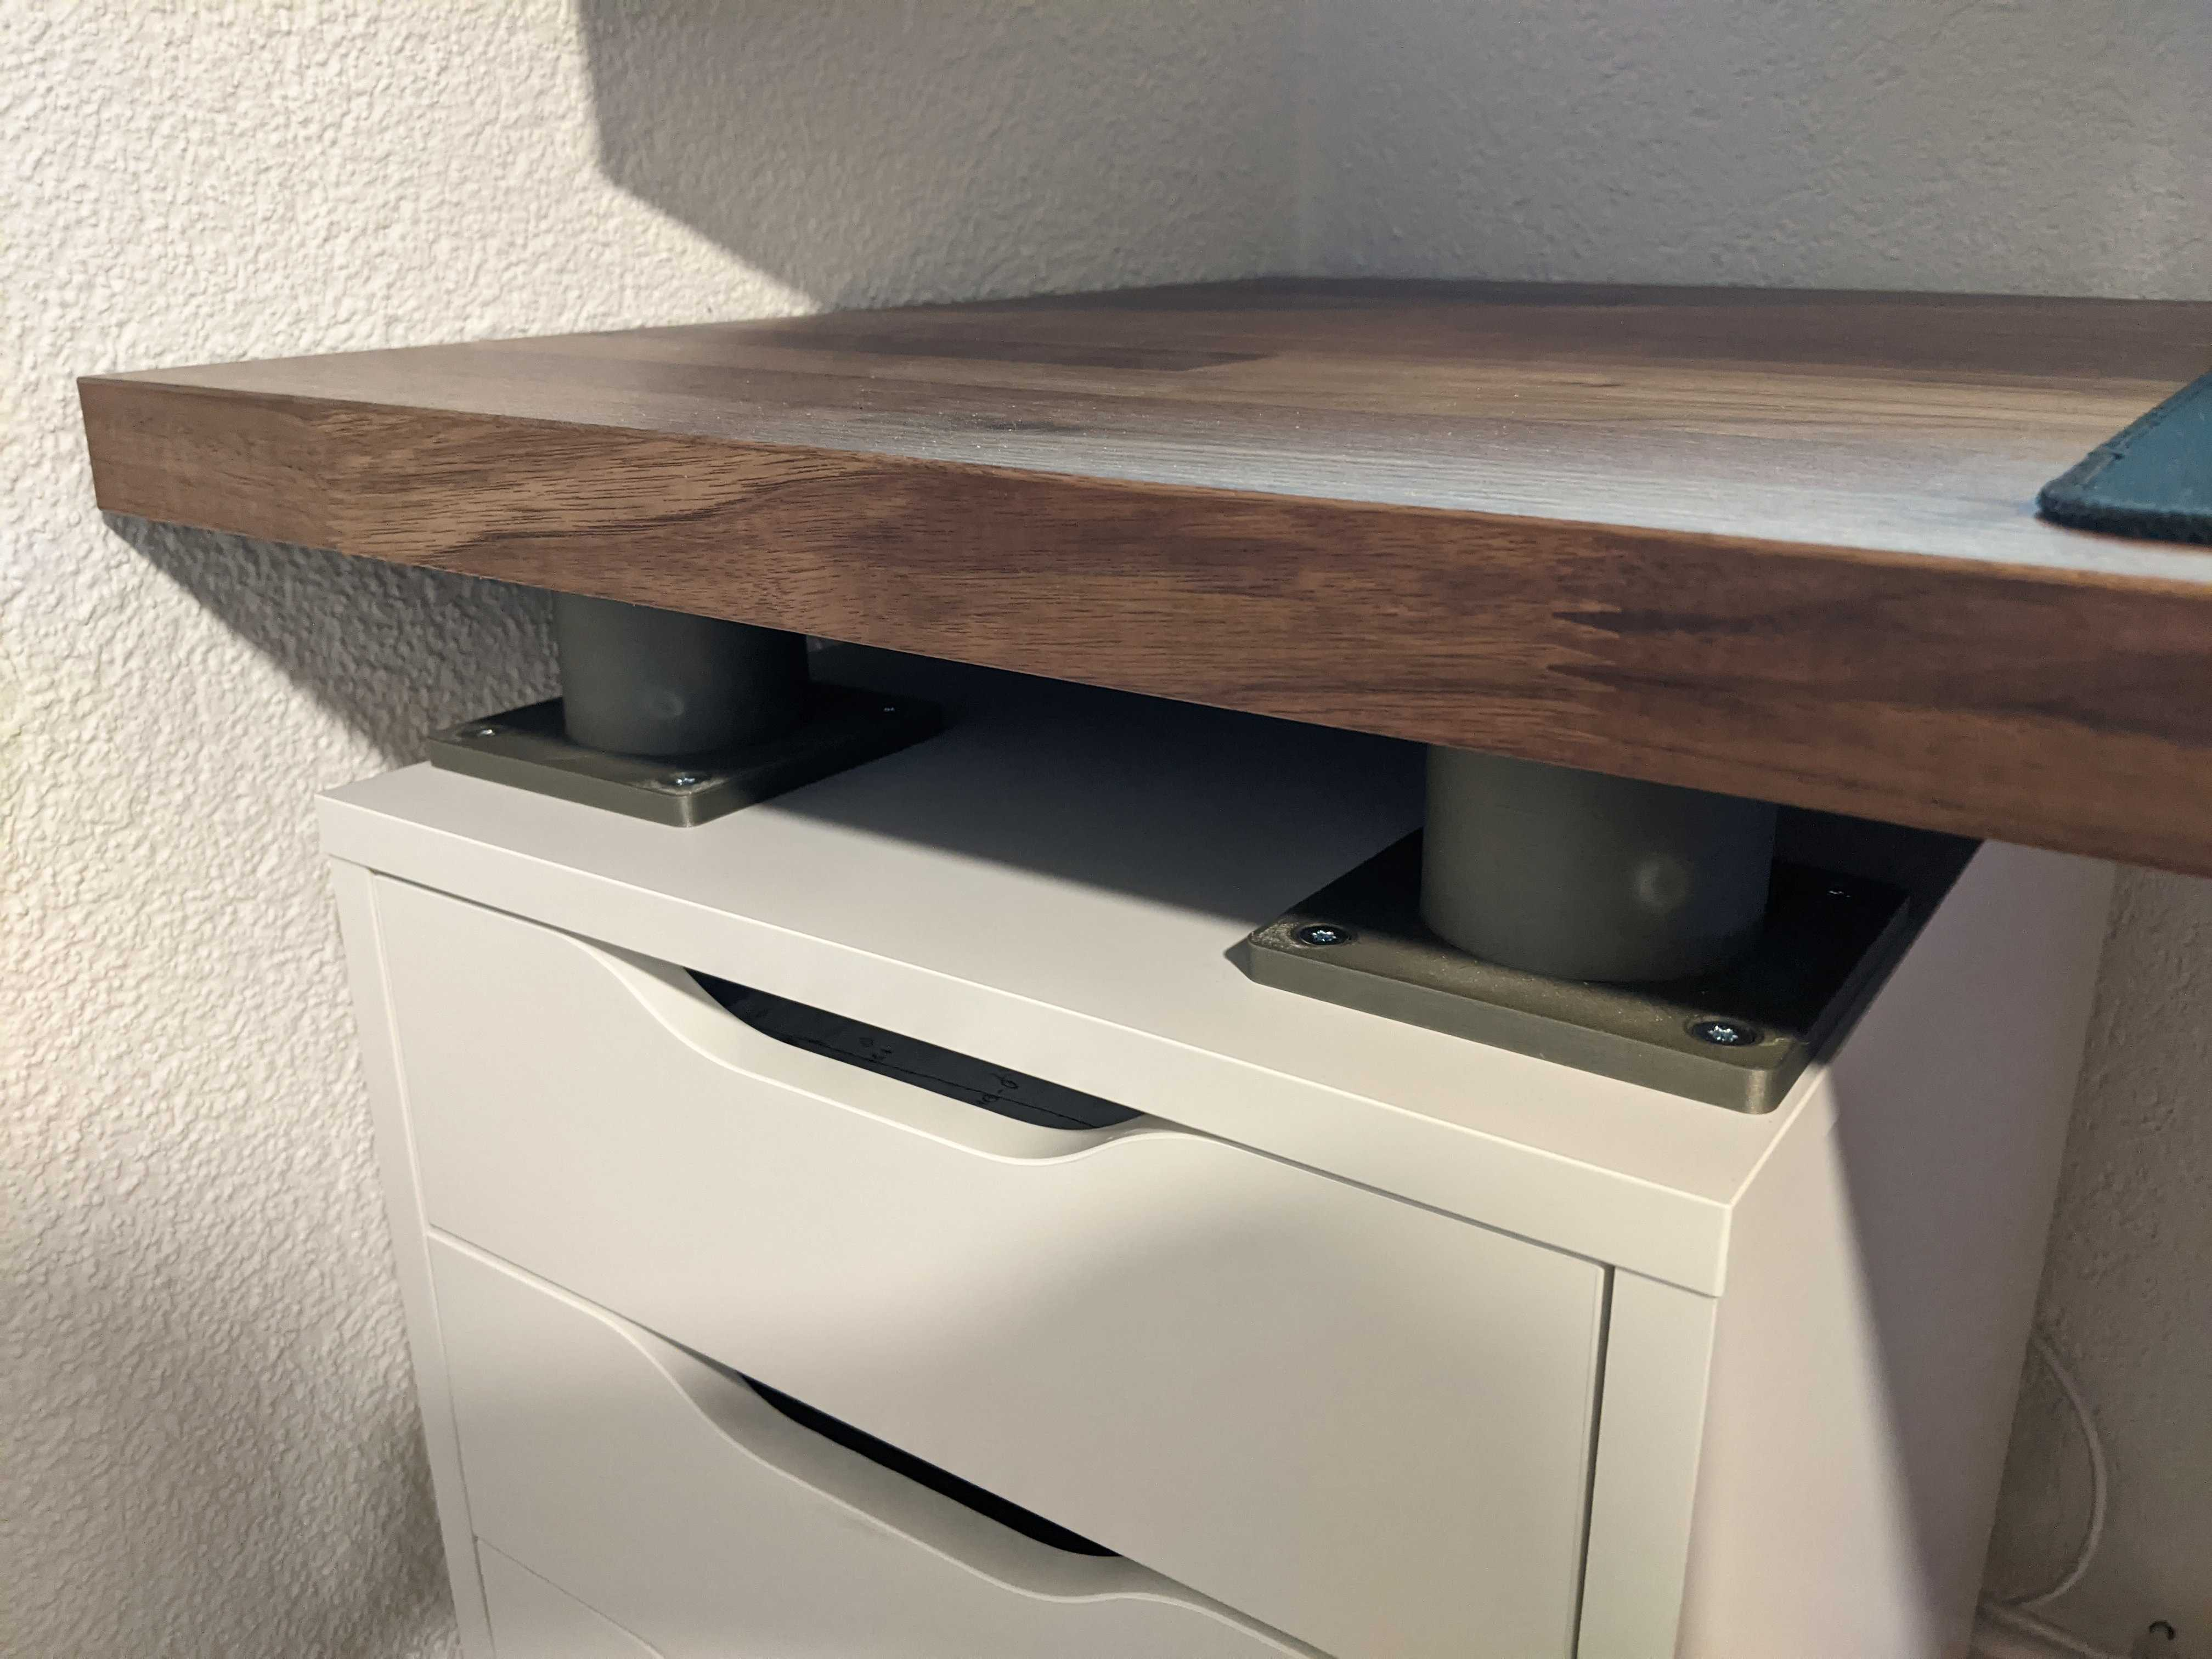 Ikea Spacer For Alex Drawer And Karlby Plate By Jor 93 Thingiverse